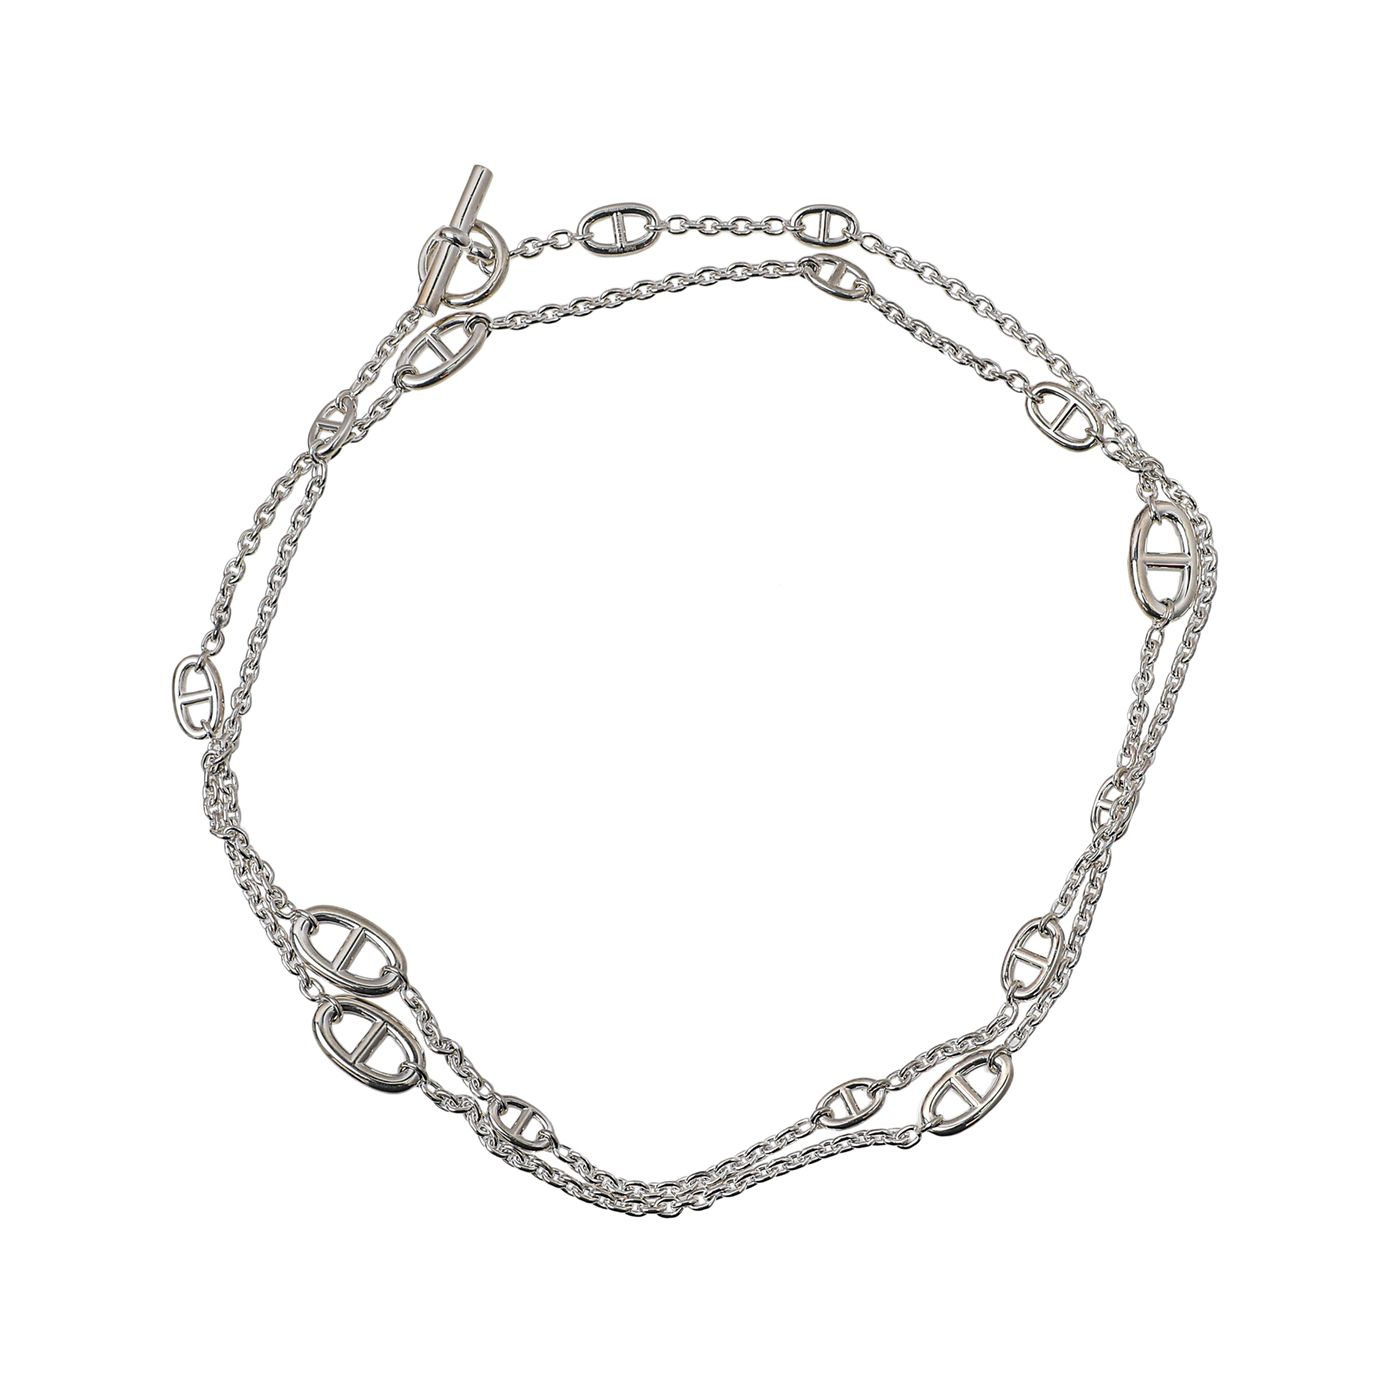 Hermes Sterling Silver Farandole 46 Inch Necklace